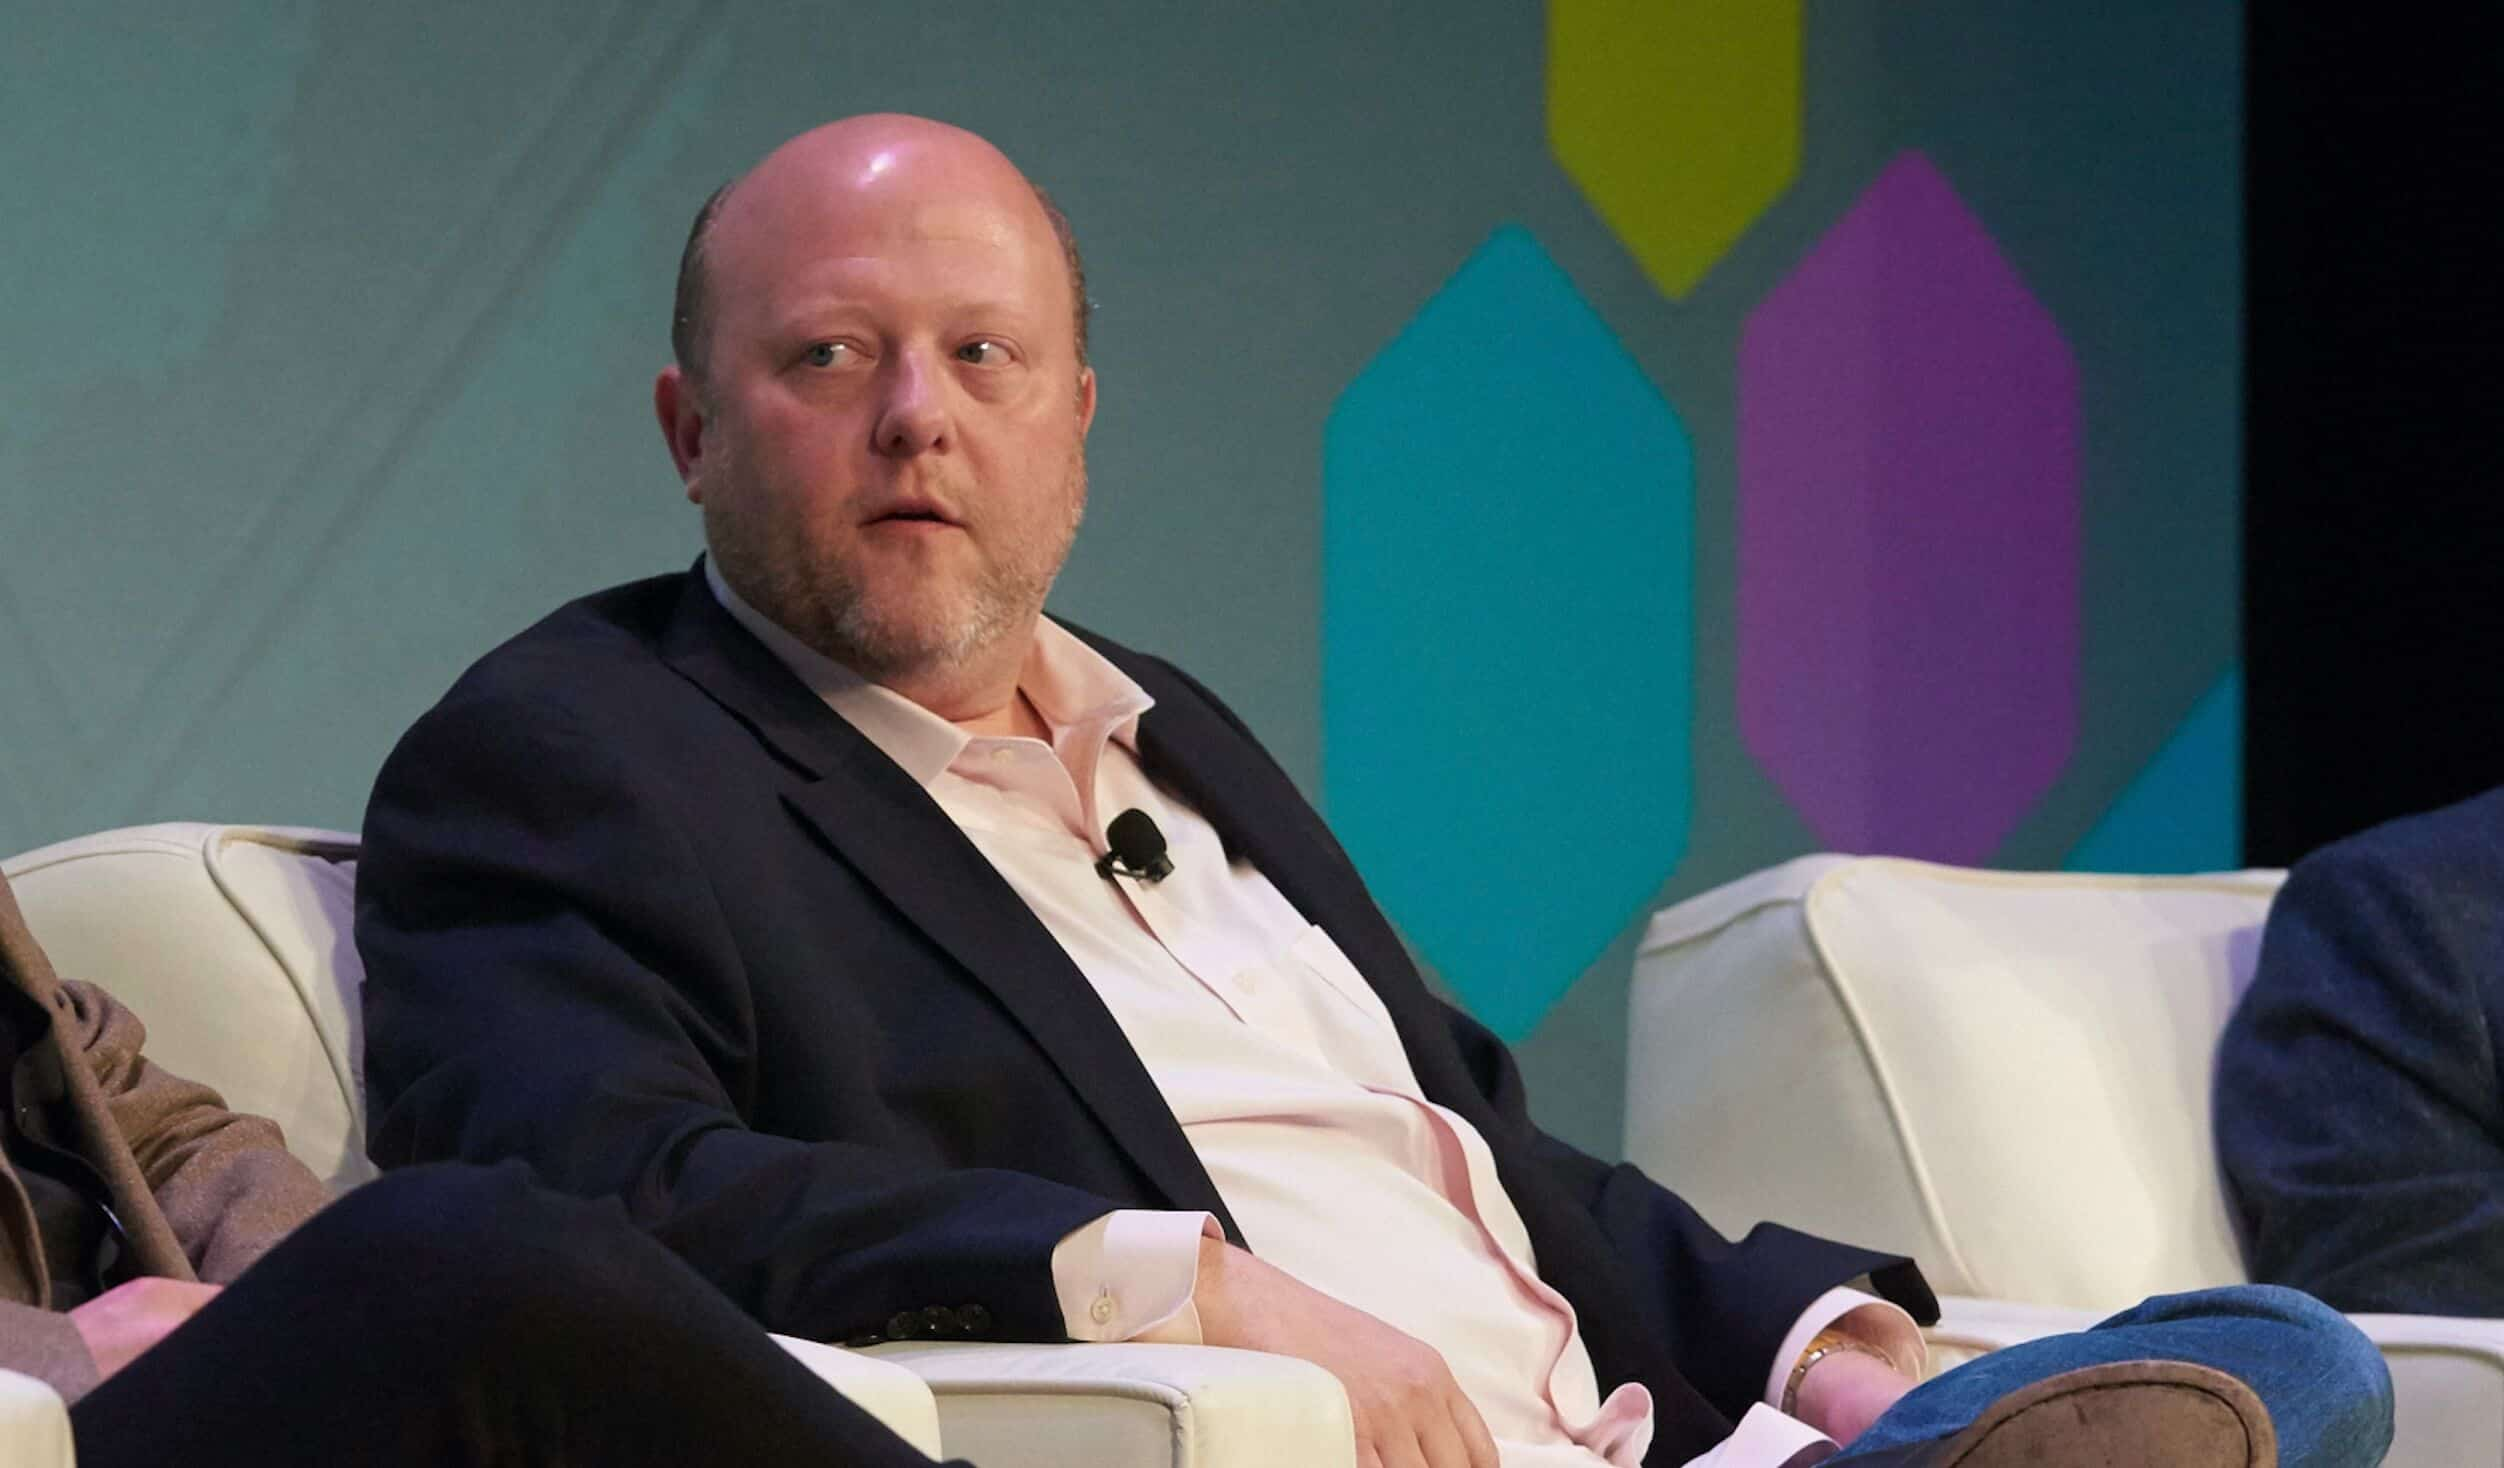 Circle CEO Jeremy Allaire Wants to Tell US Lawmakers That the Country Is Falling Behind in Crypto